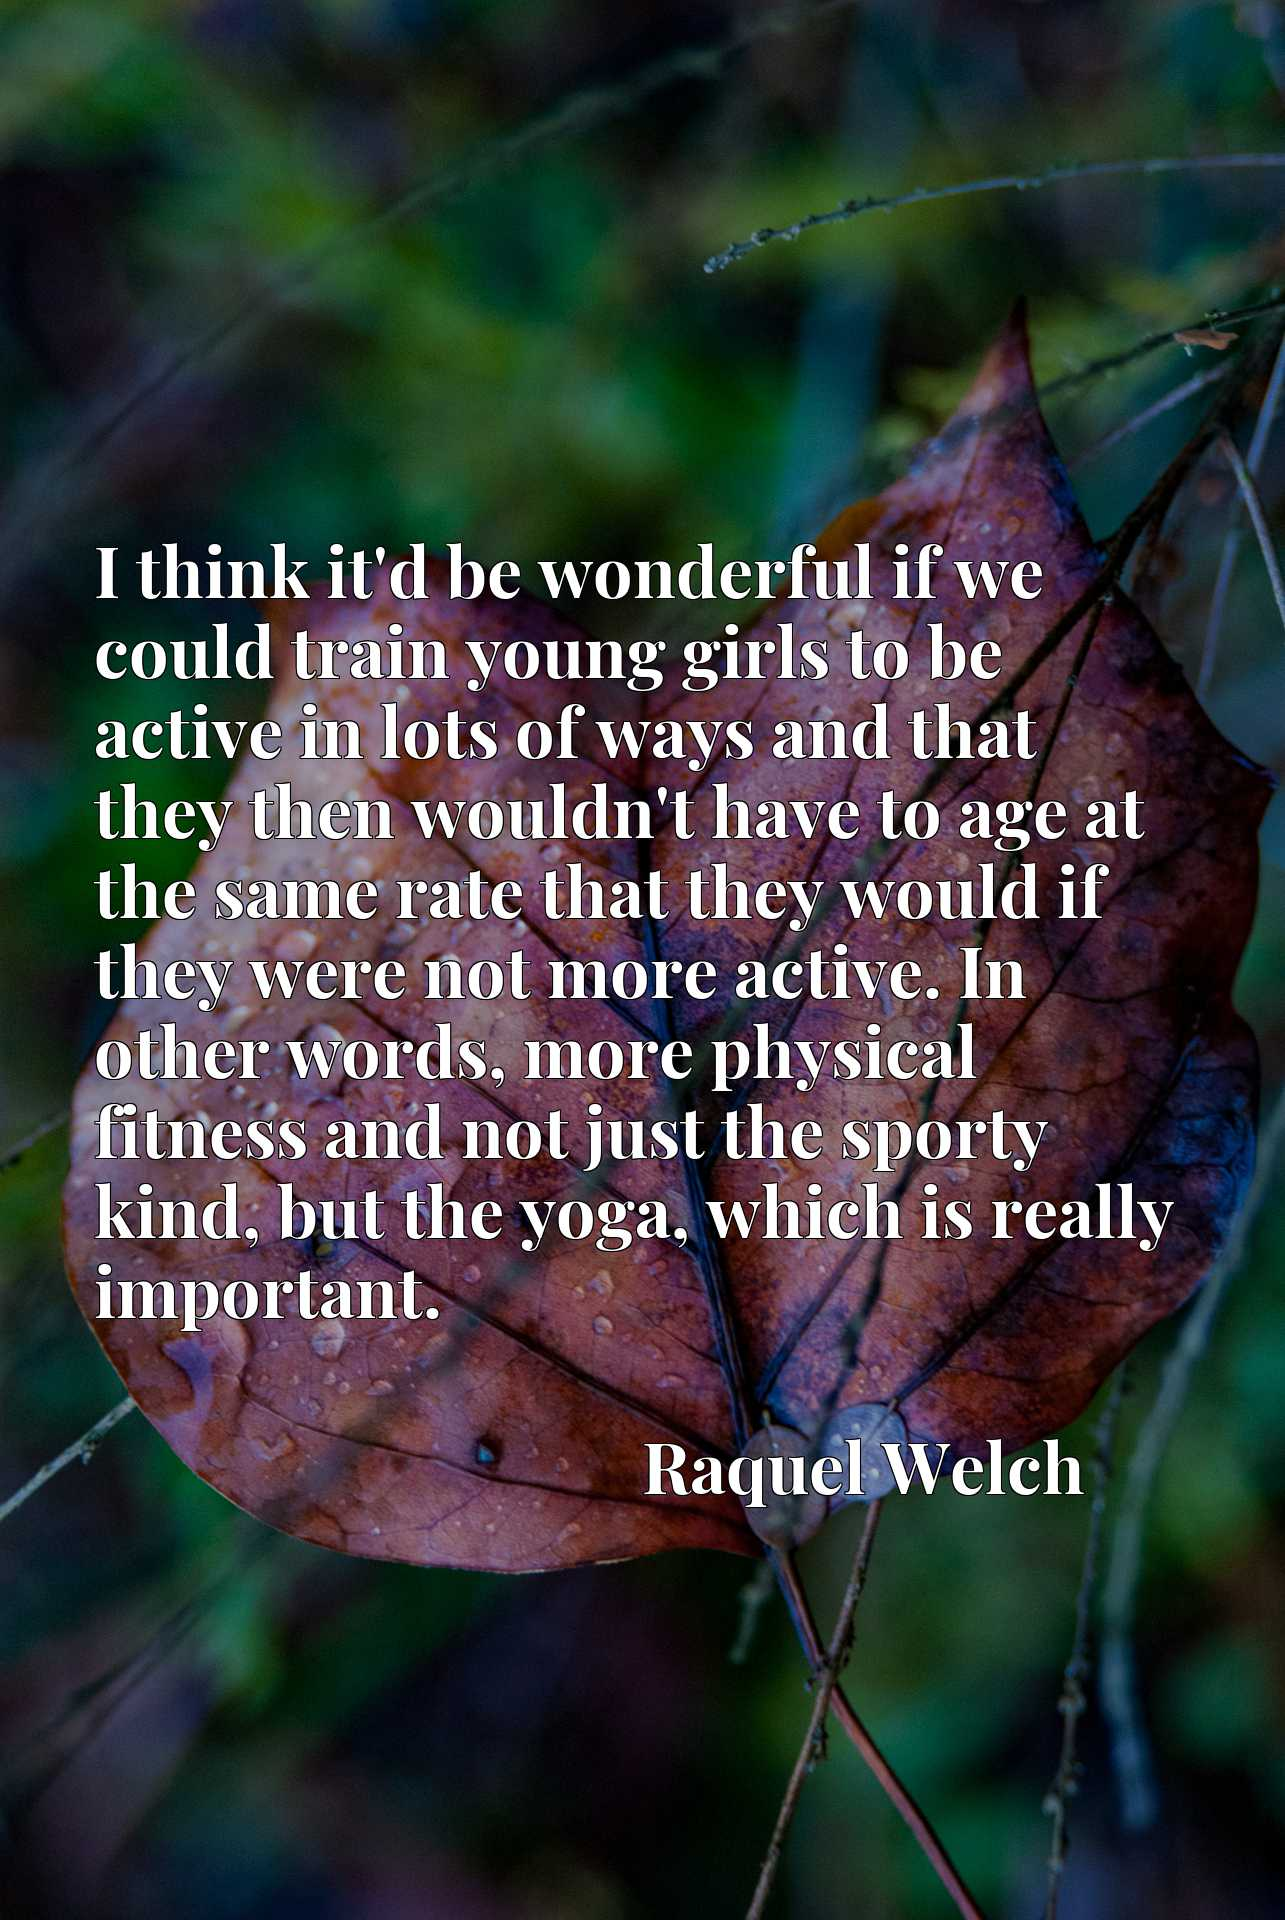 I think it'd be wonderful if we could train young girls to be active in lots of ways and that they then wouldn't have to age at the same rate that they would if they were not more active. In other words, more physical fitness and not just the sporty kind, but the yoga, which is really important.